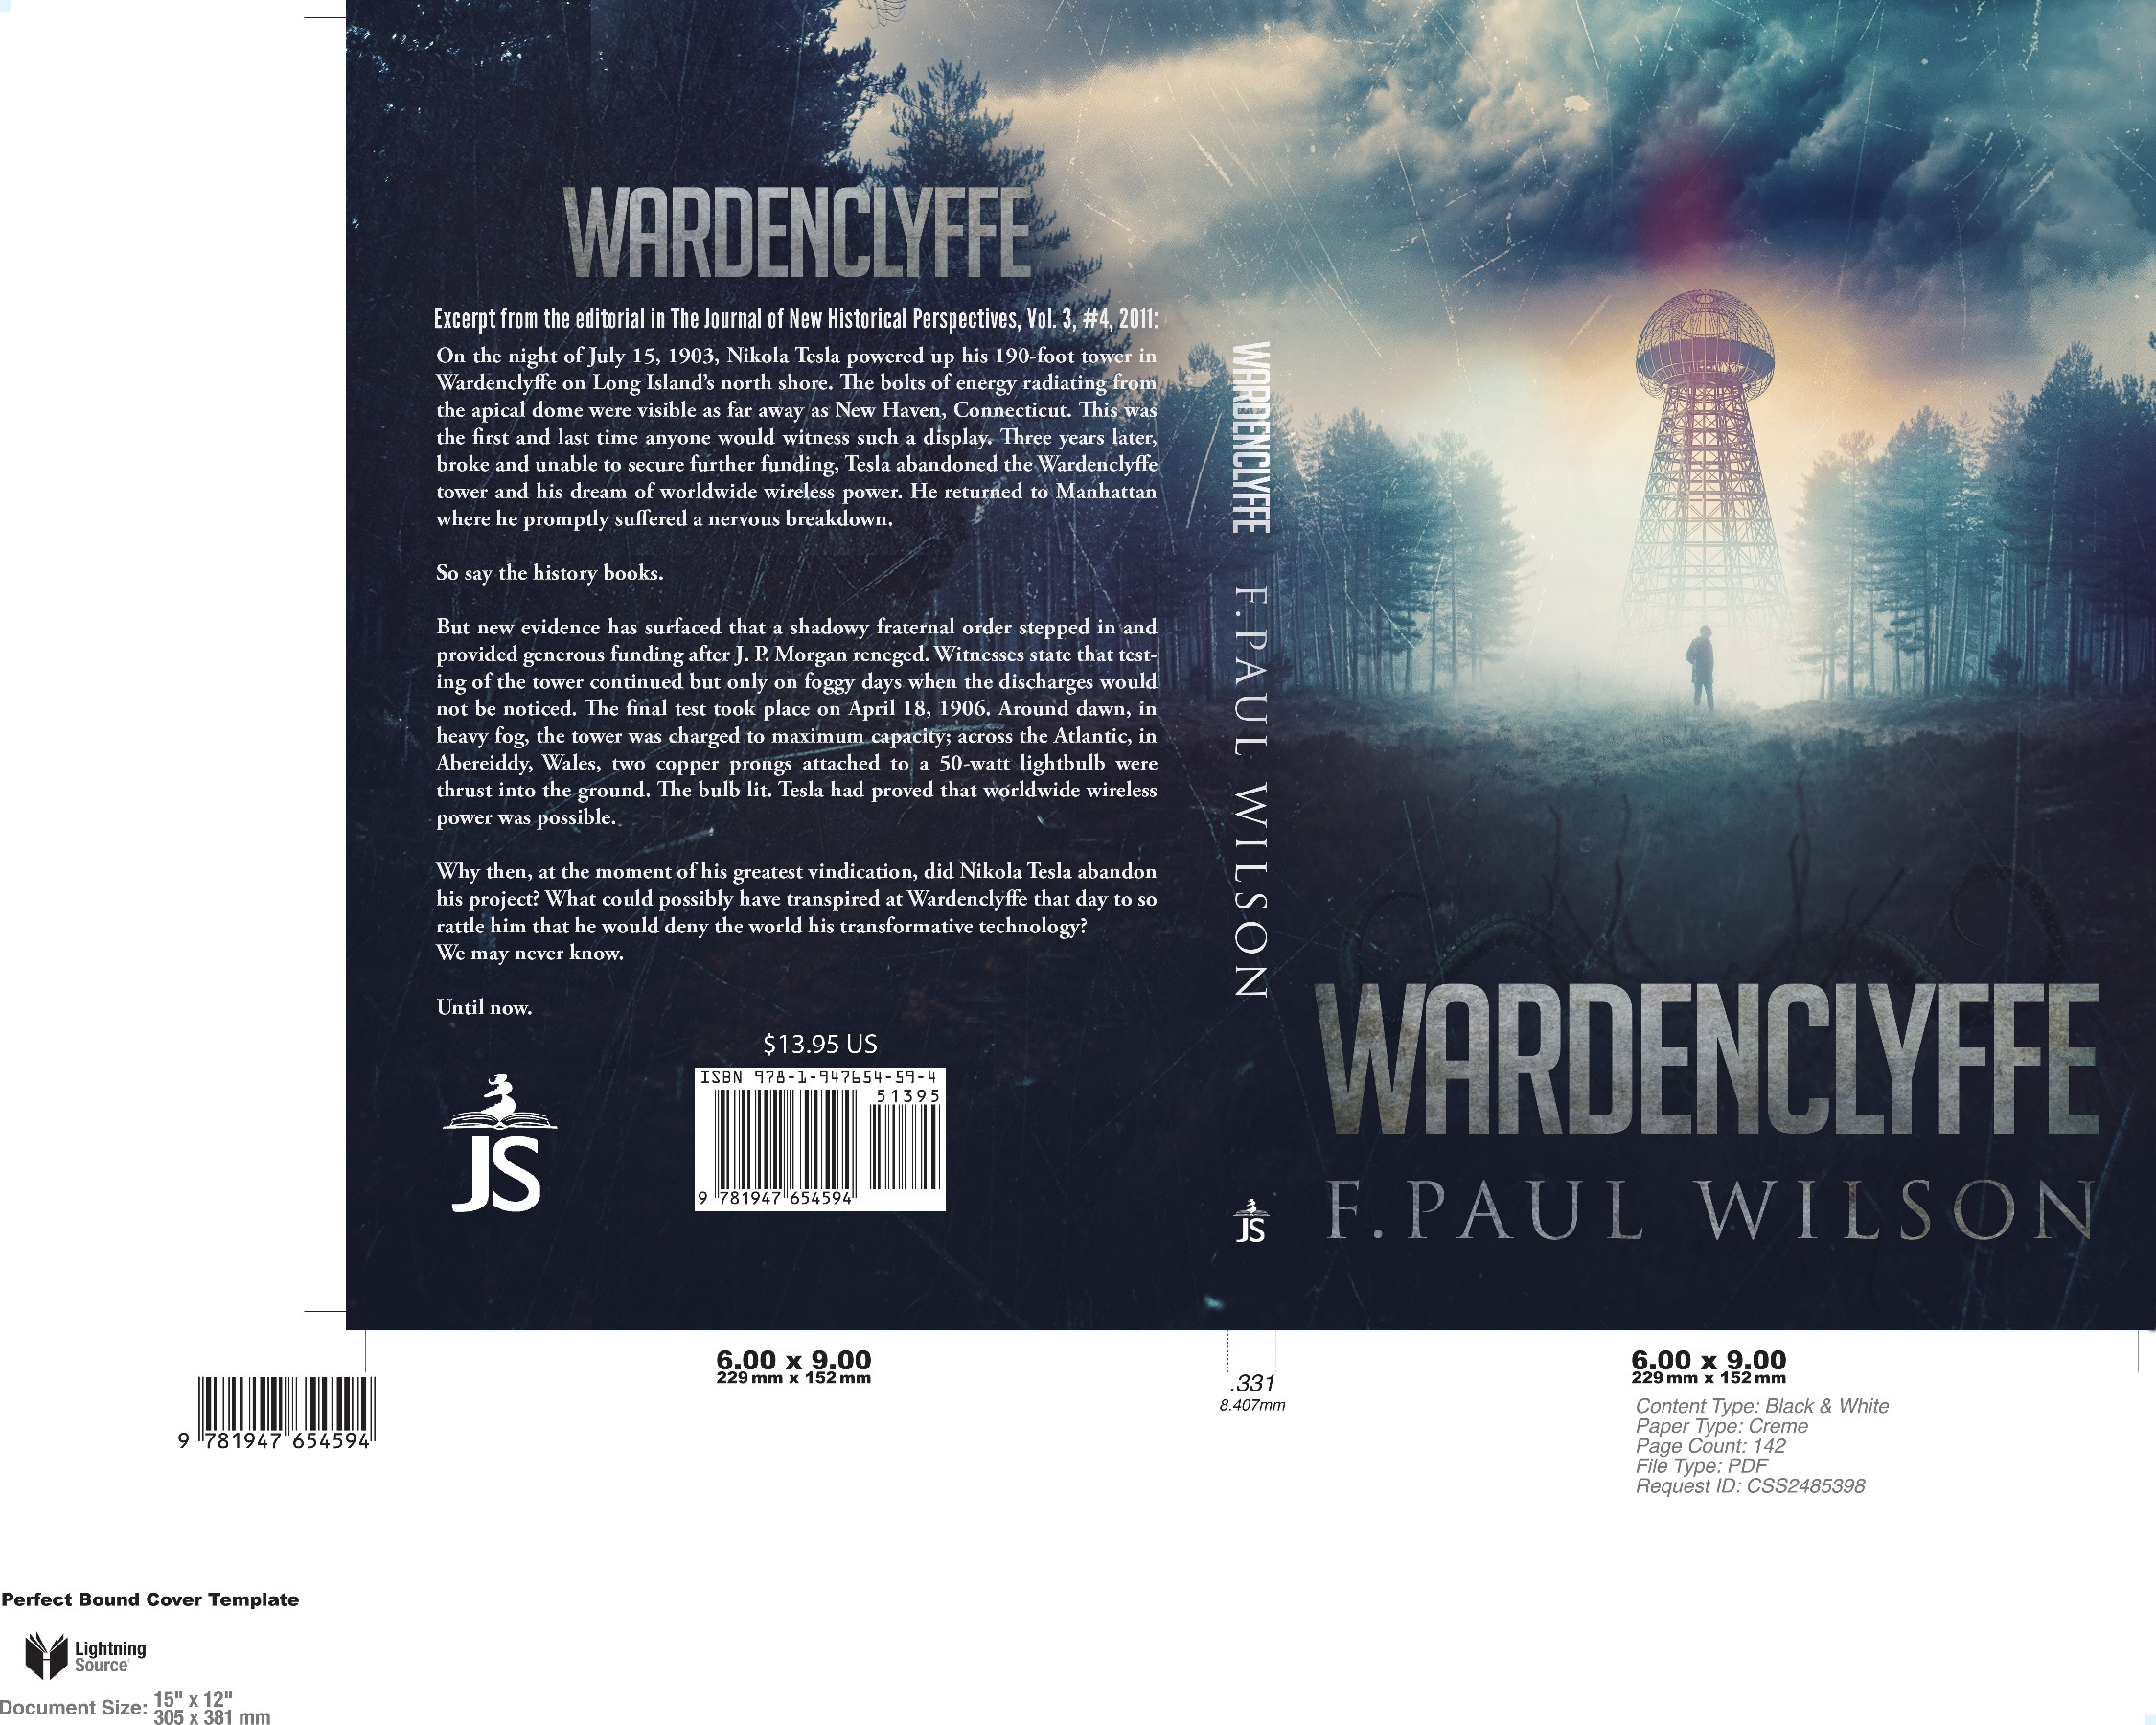 Book Cover Needed for Award-Winning Author's Latest Novella